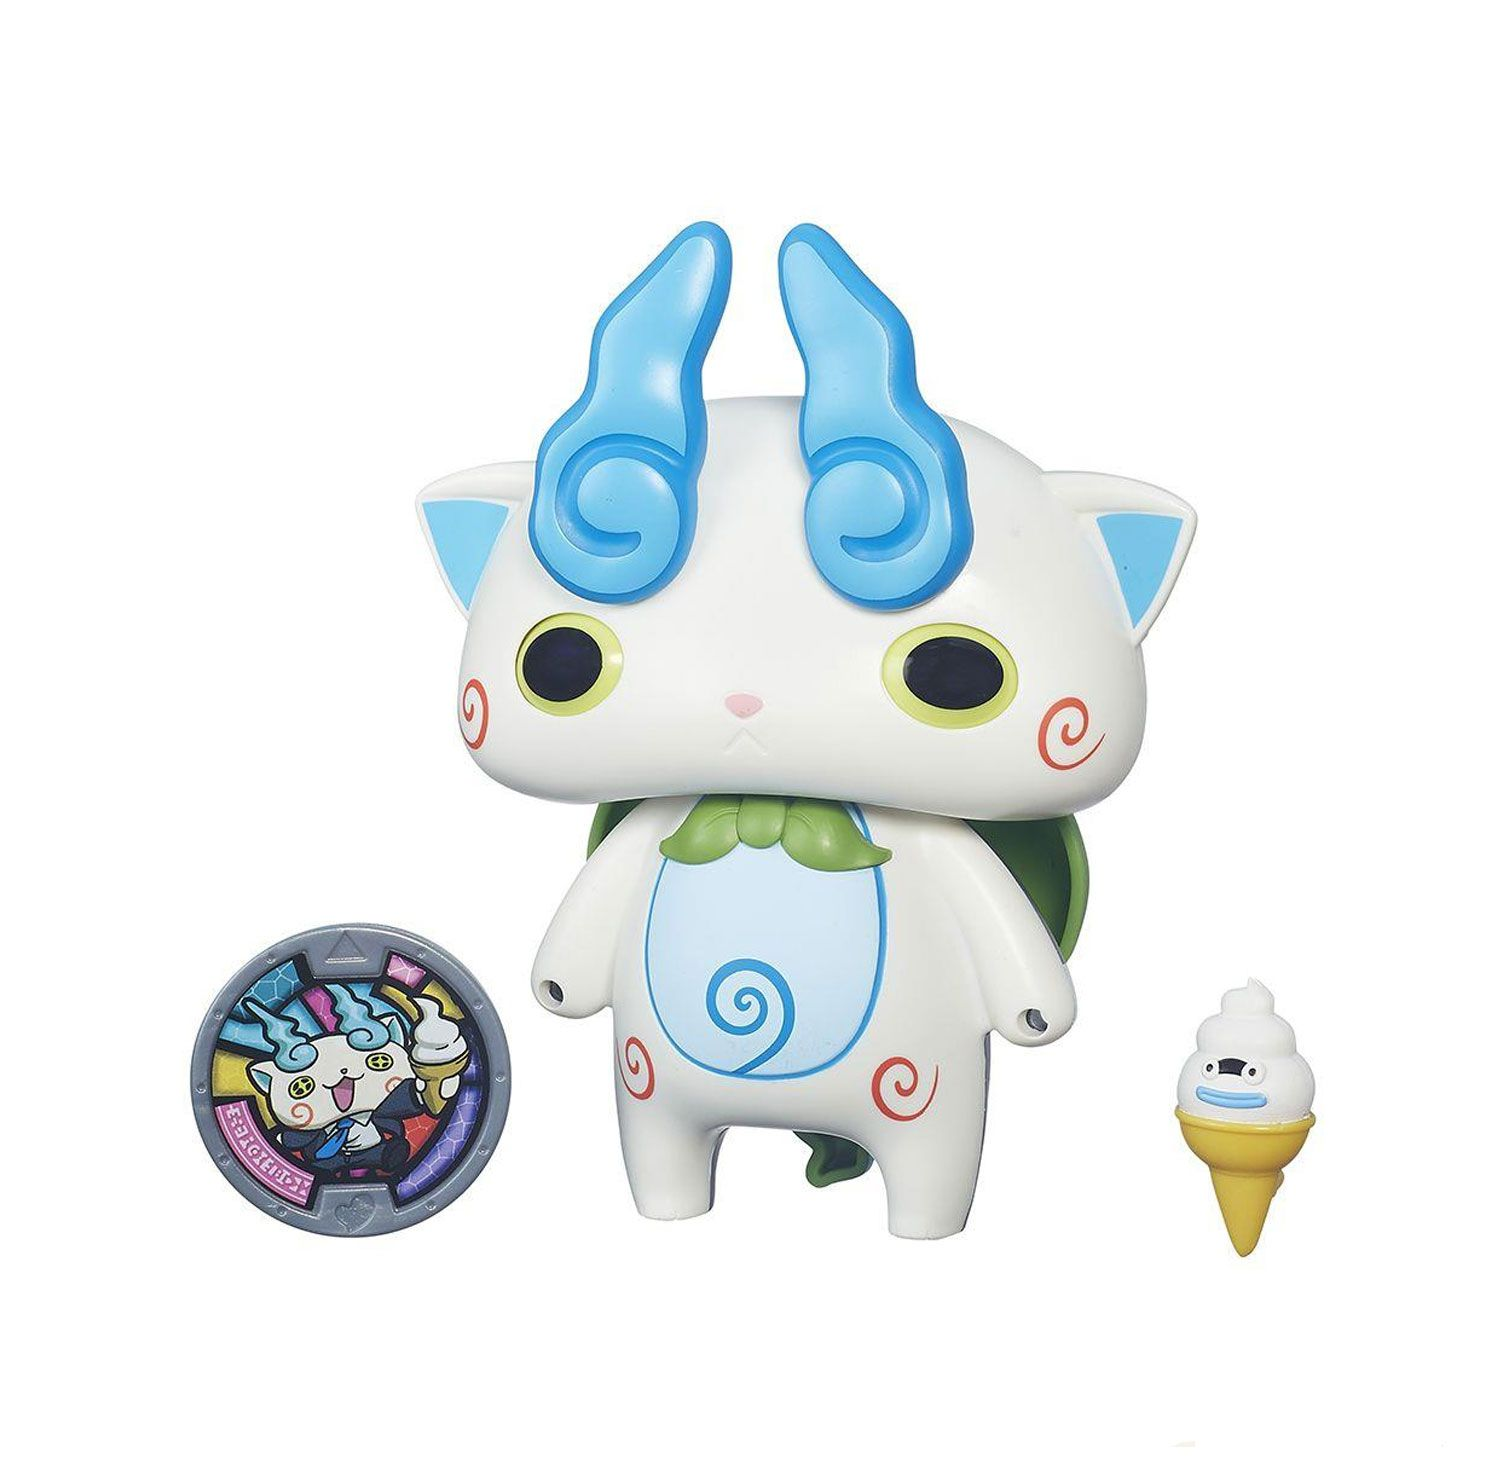 YOKAI WATCH HASBRO REF:5946